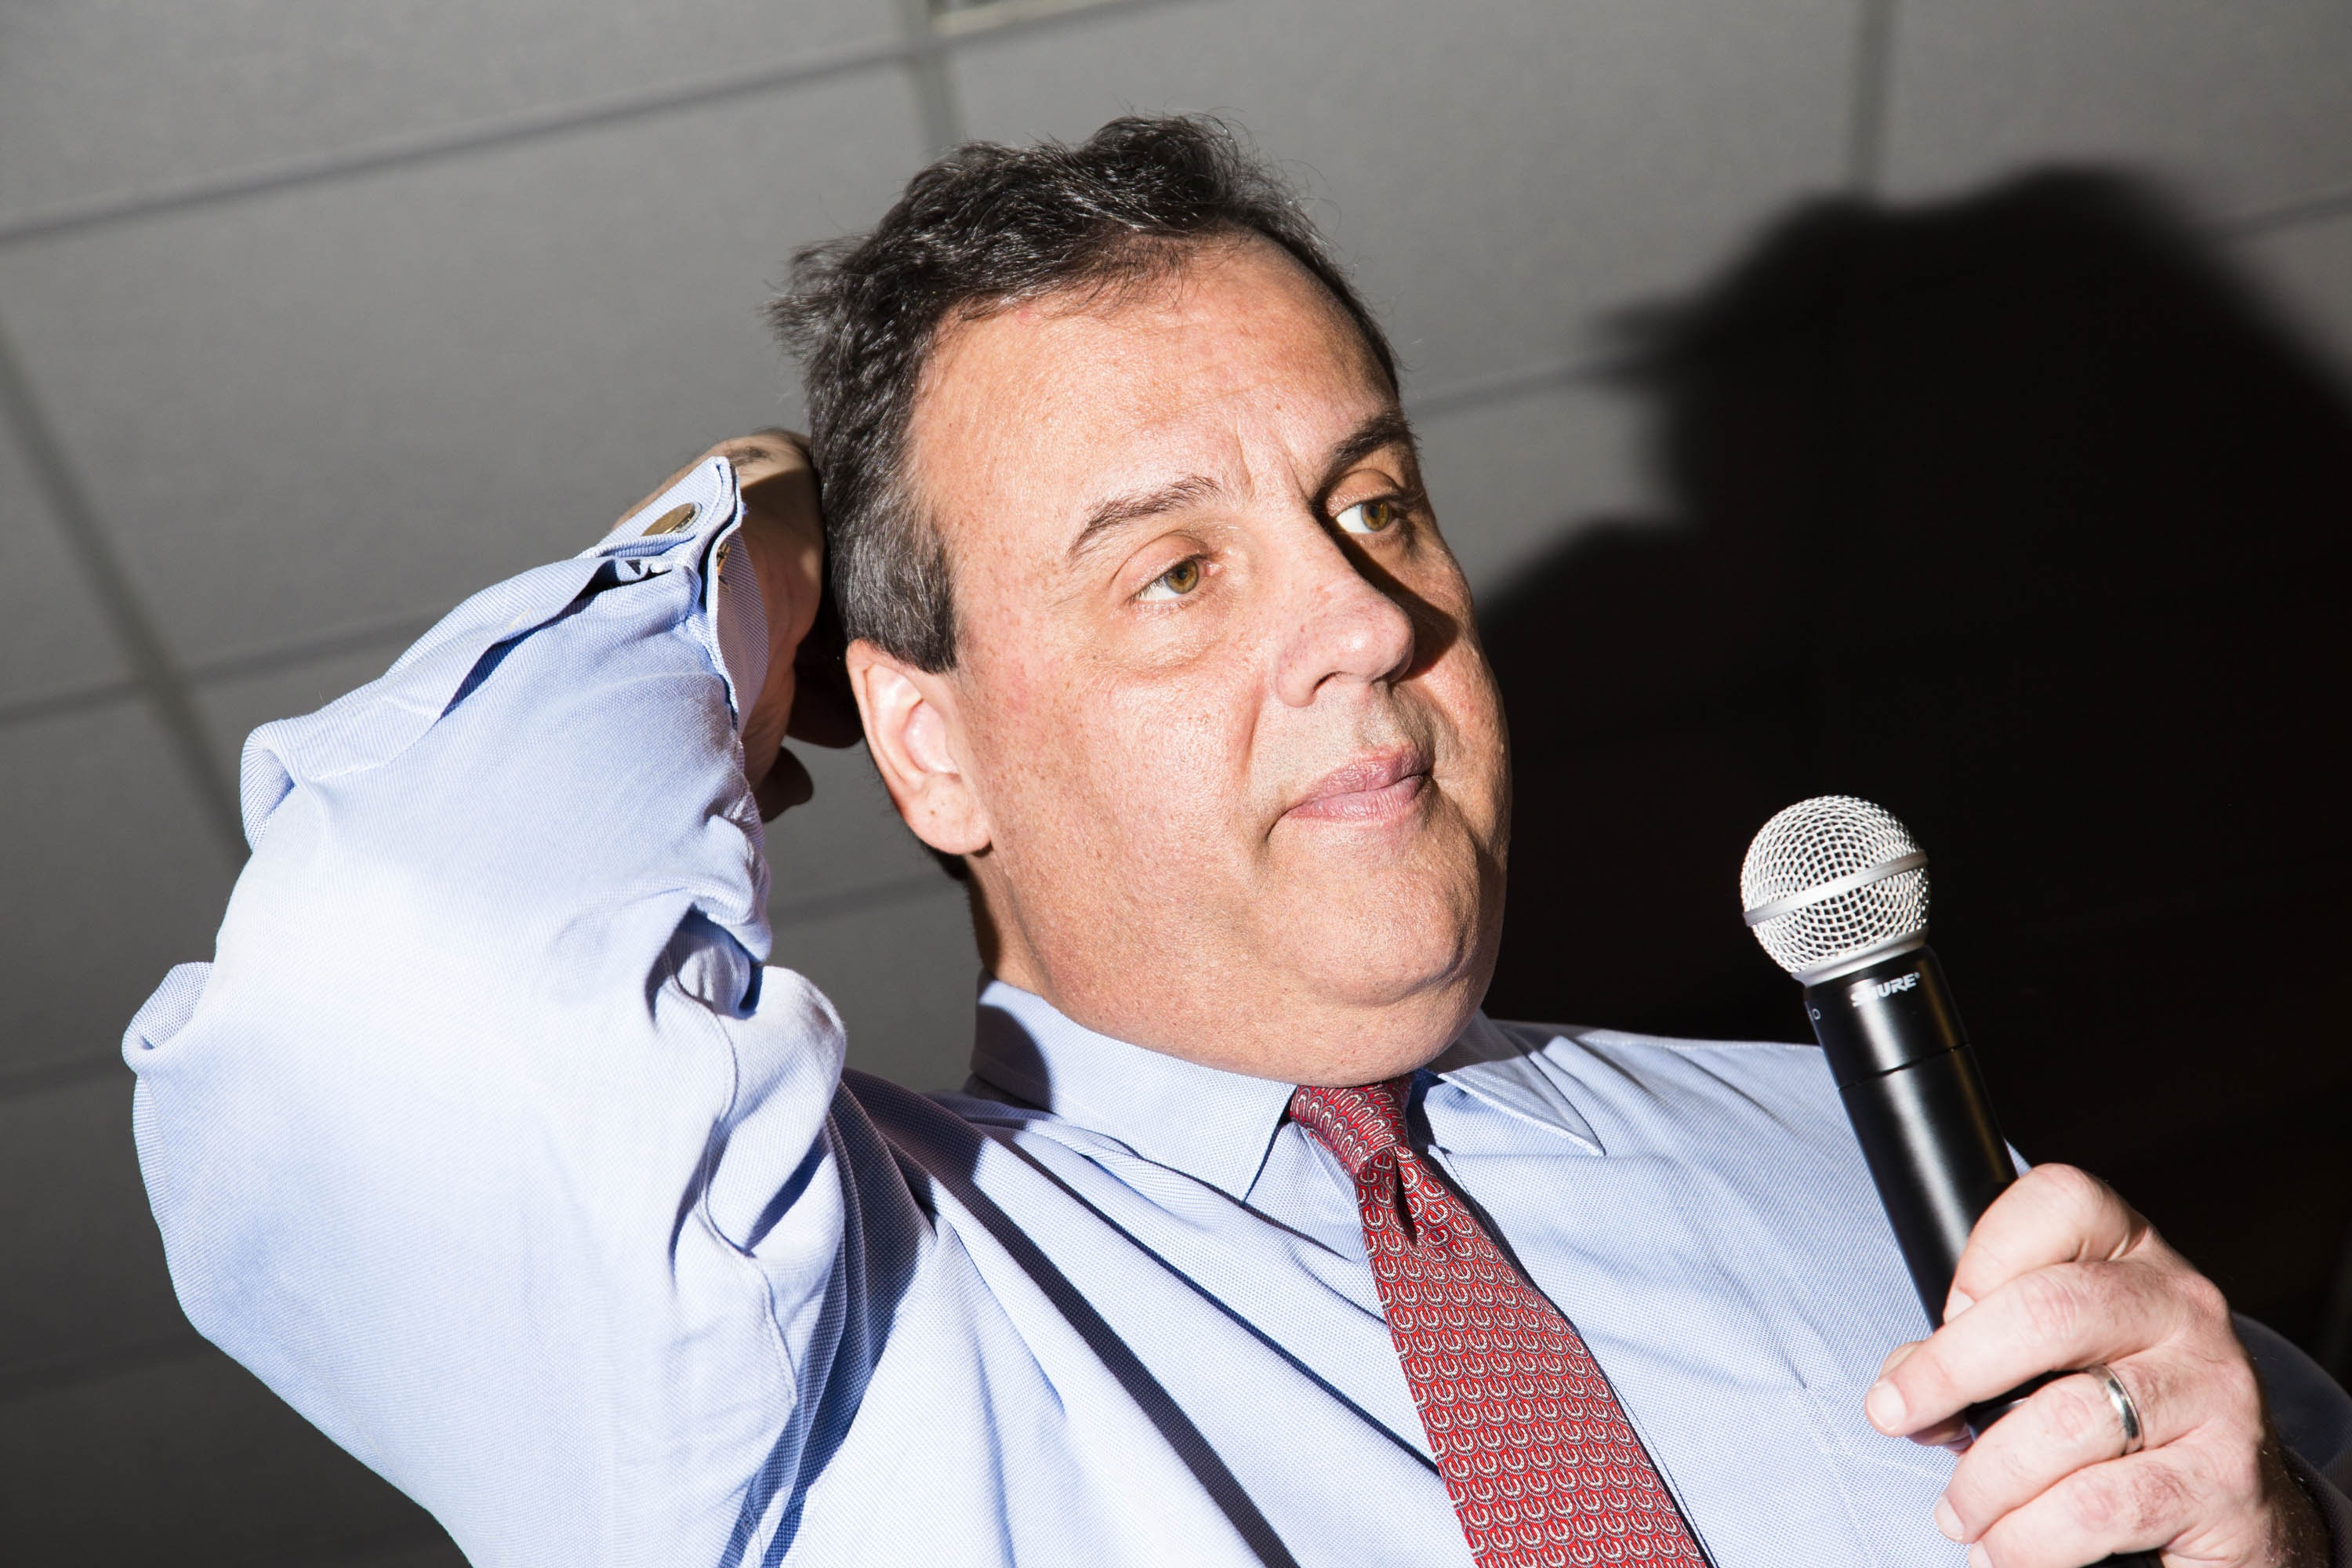 Chris Christie speaks to attendees during a campaign event on Feb. 7, 2016, in Hampton, NH.